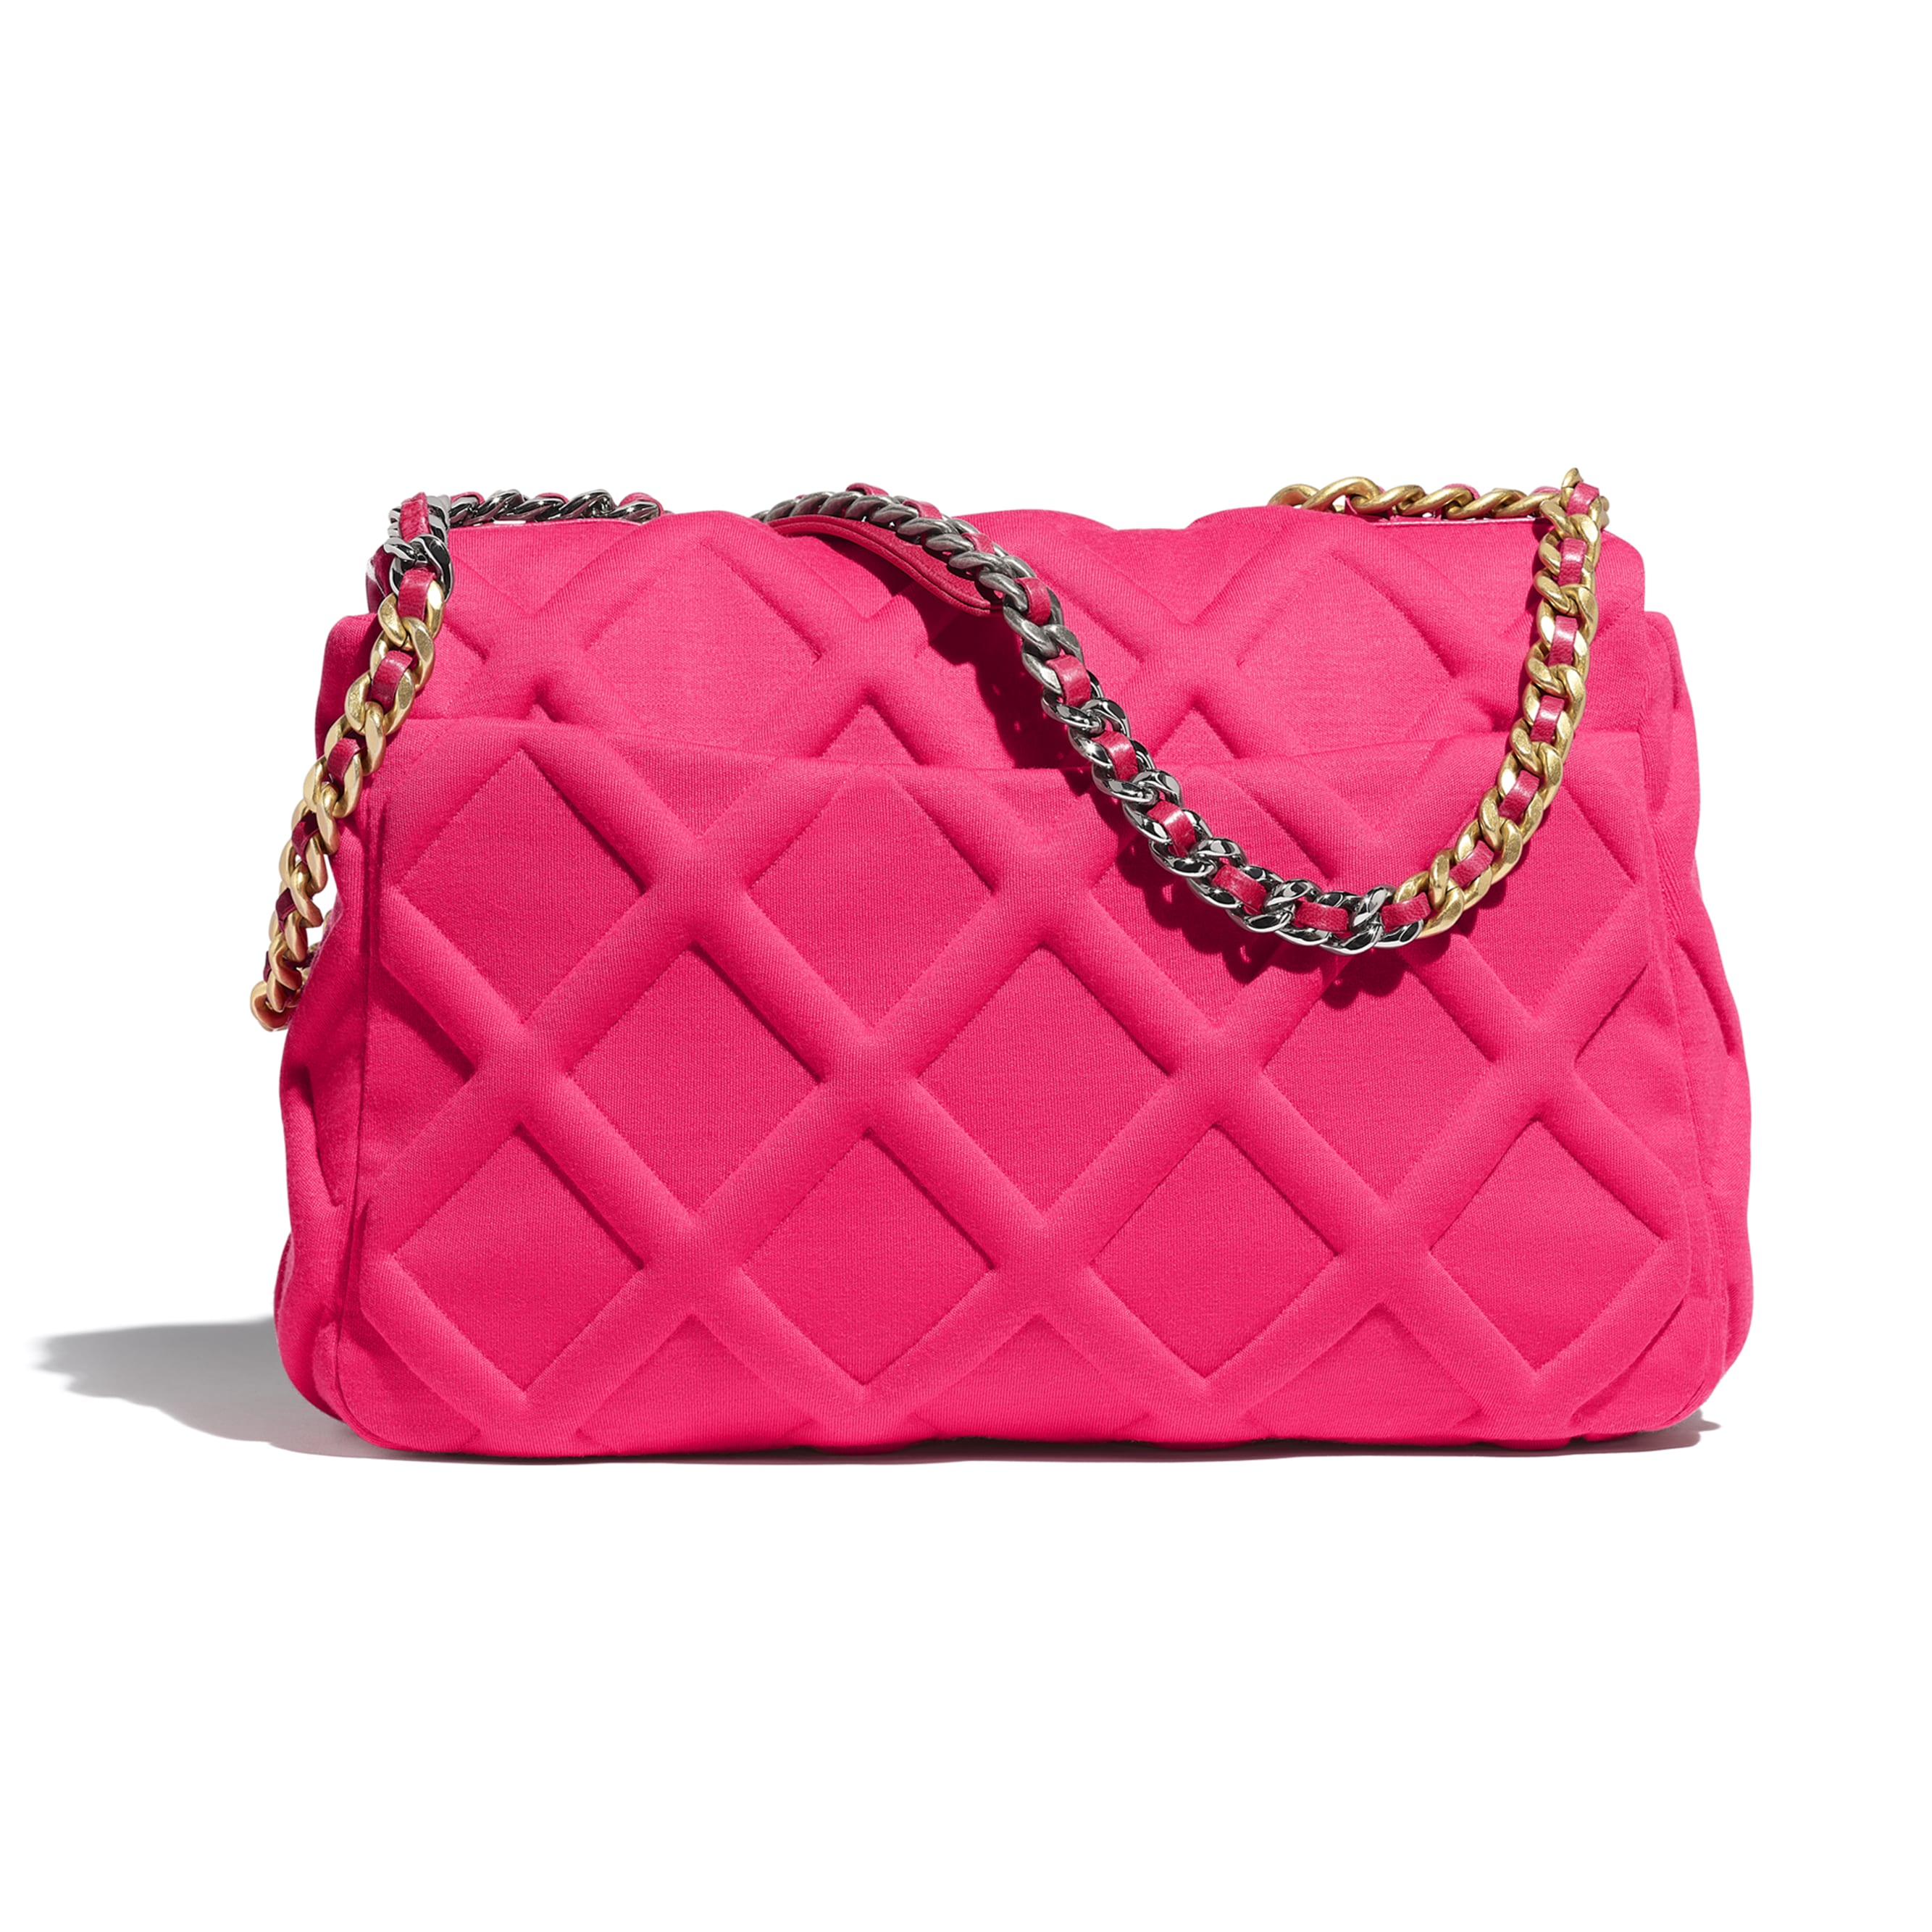 CHANEL 19 Maxi Flap Bag - Pink - Jersey, Gold-Tone, Silver-Tone & Ruthenium-Finish Metal - Alternative view - see standard sized version